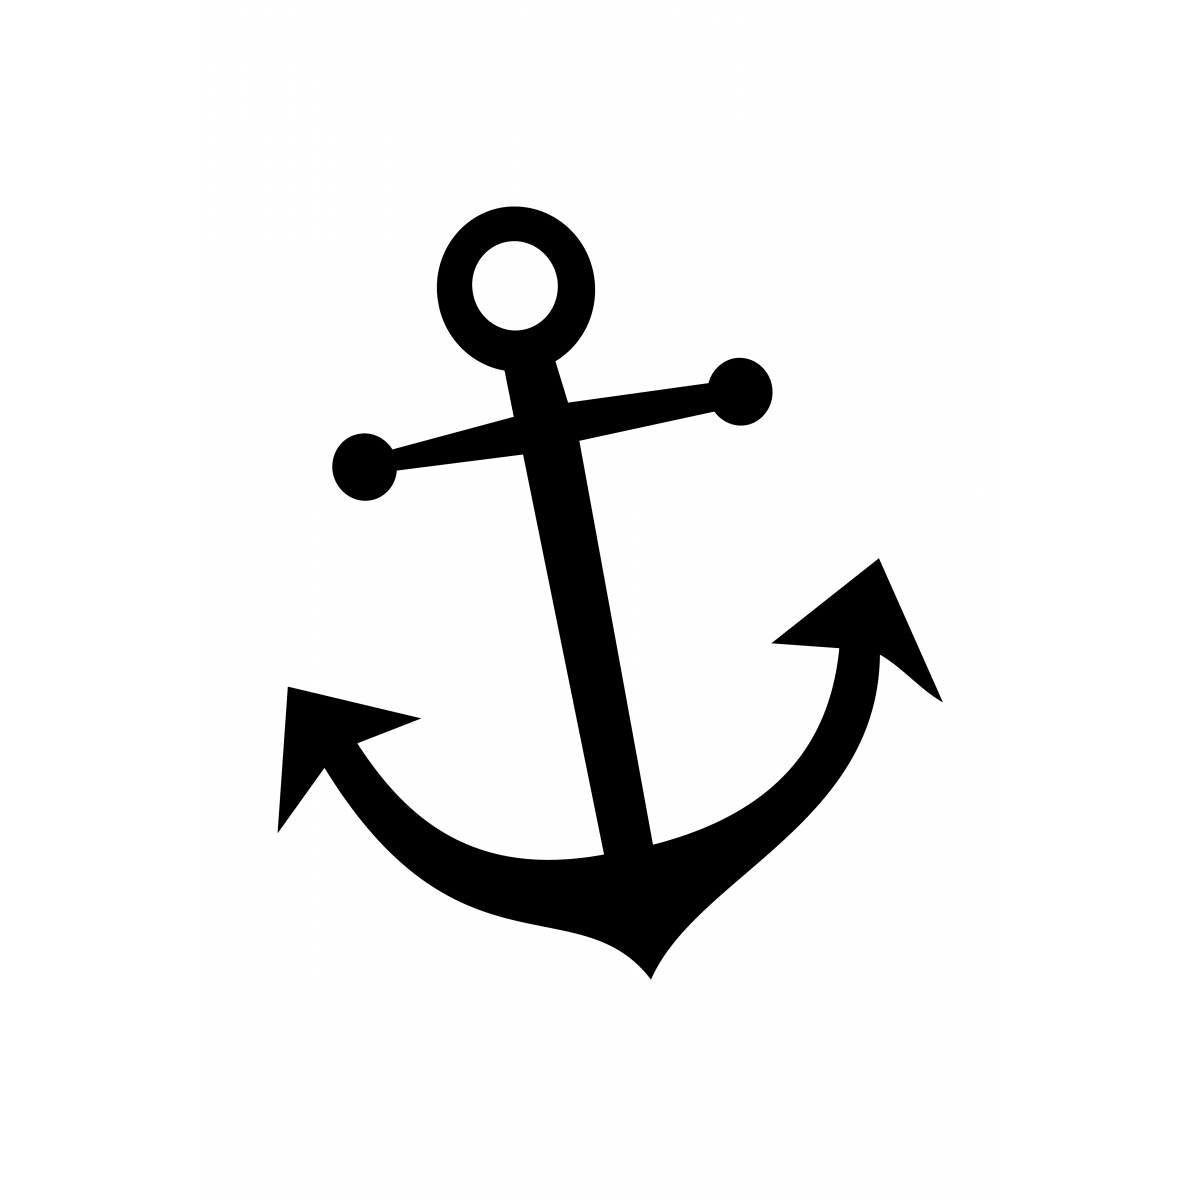 Anchor Png Simple image #11938